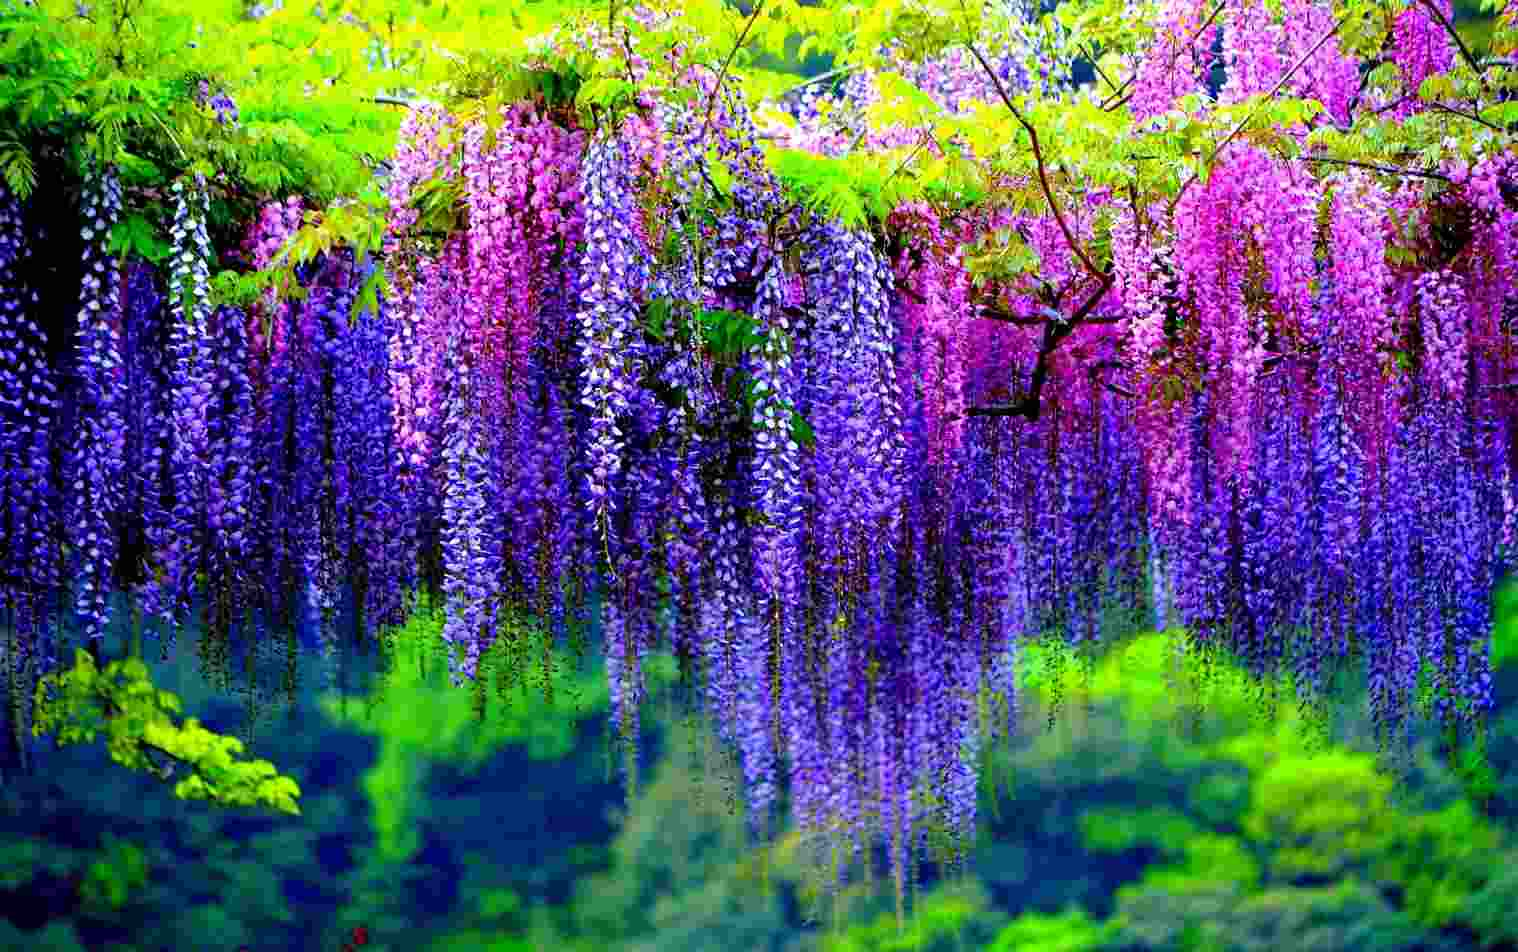 wisteria poisonous plants